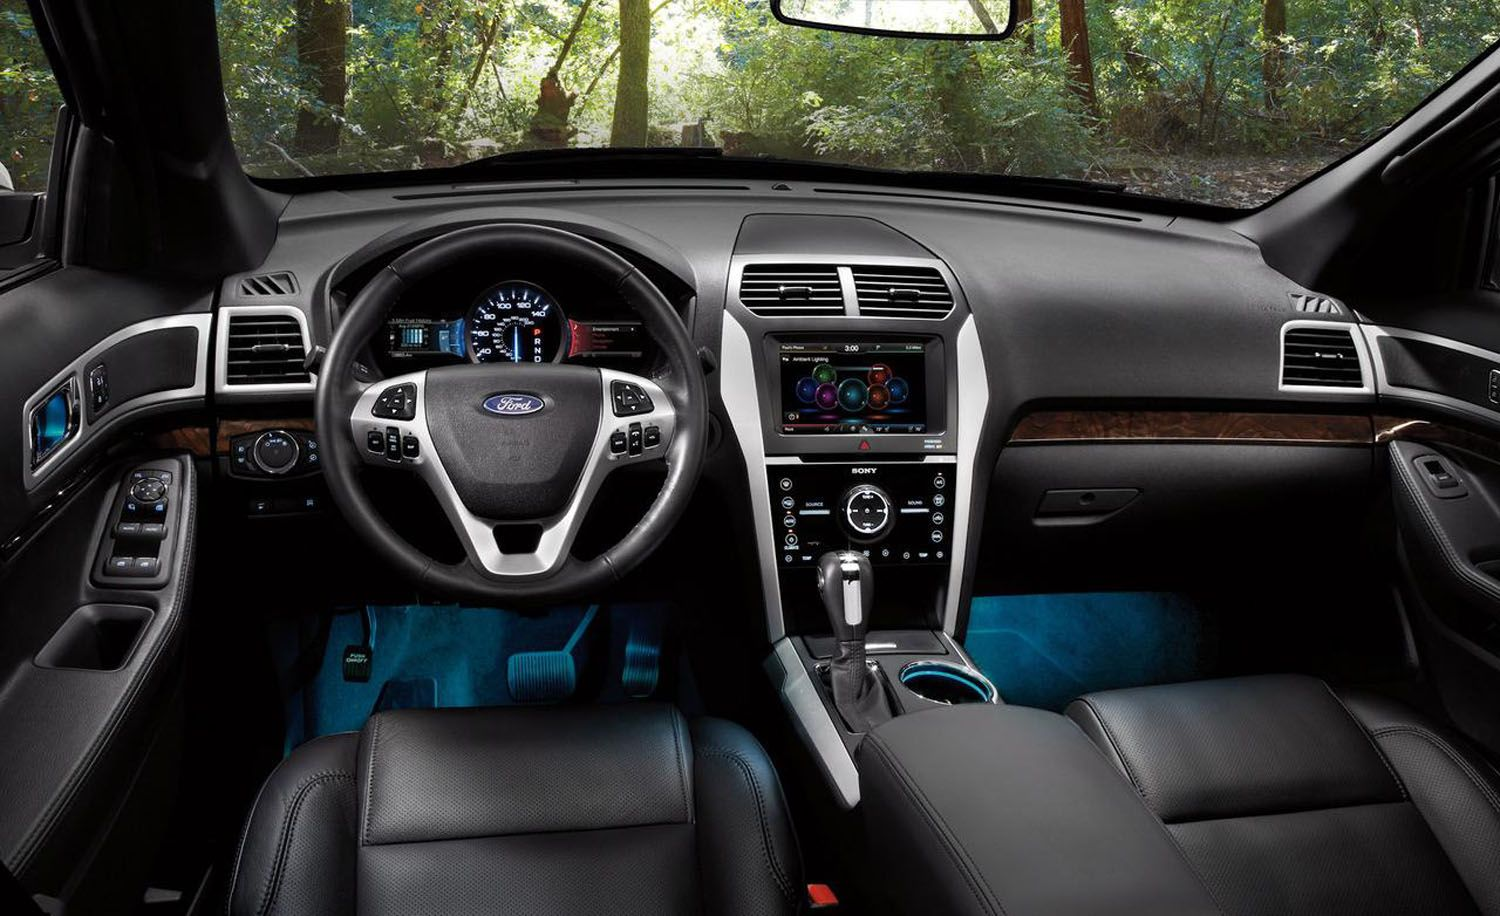 2014 Ford Expedition Interior With Images 2013 Ford Explorer